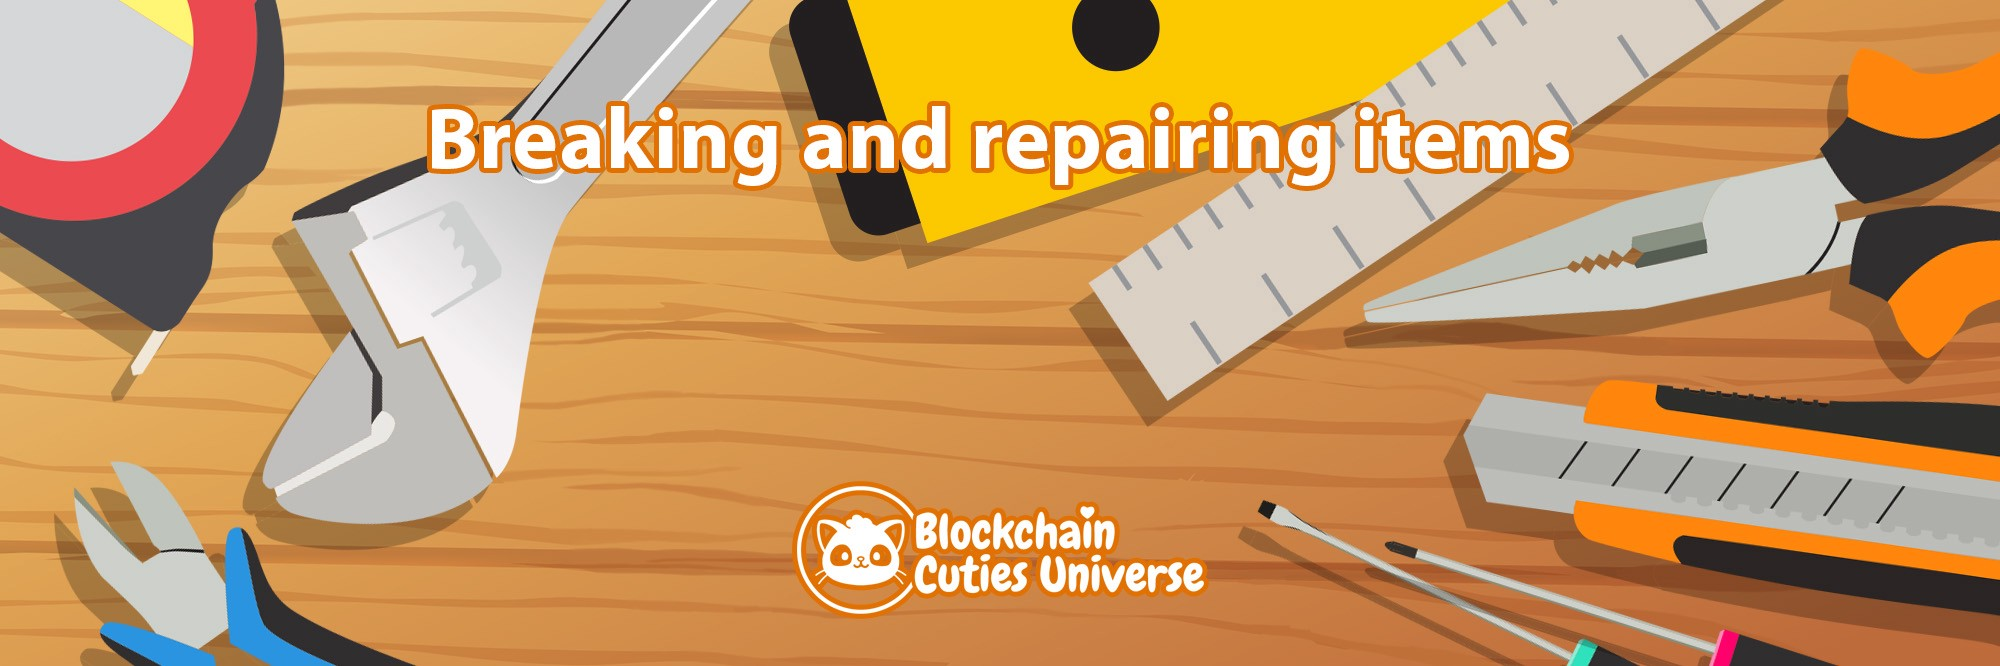 Recycling: Breaking and Repairing Items